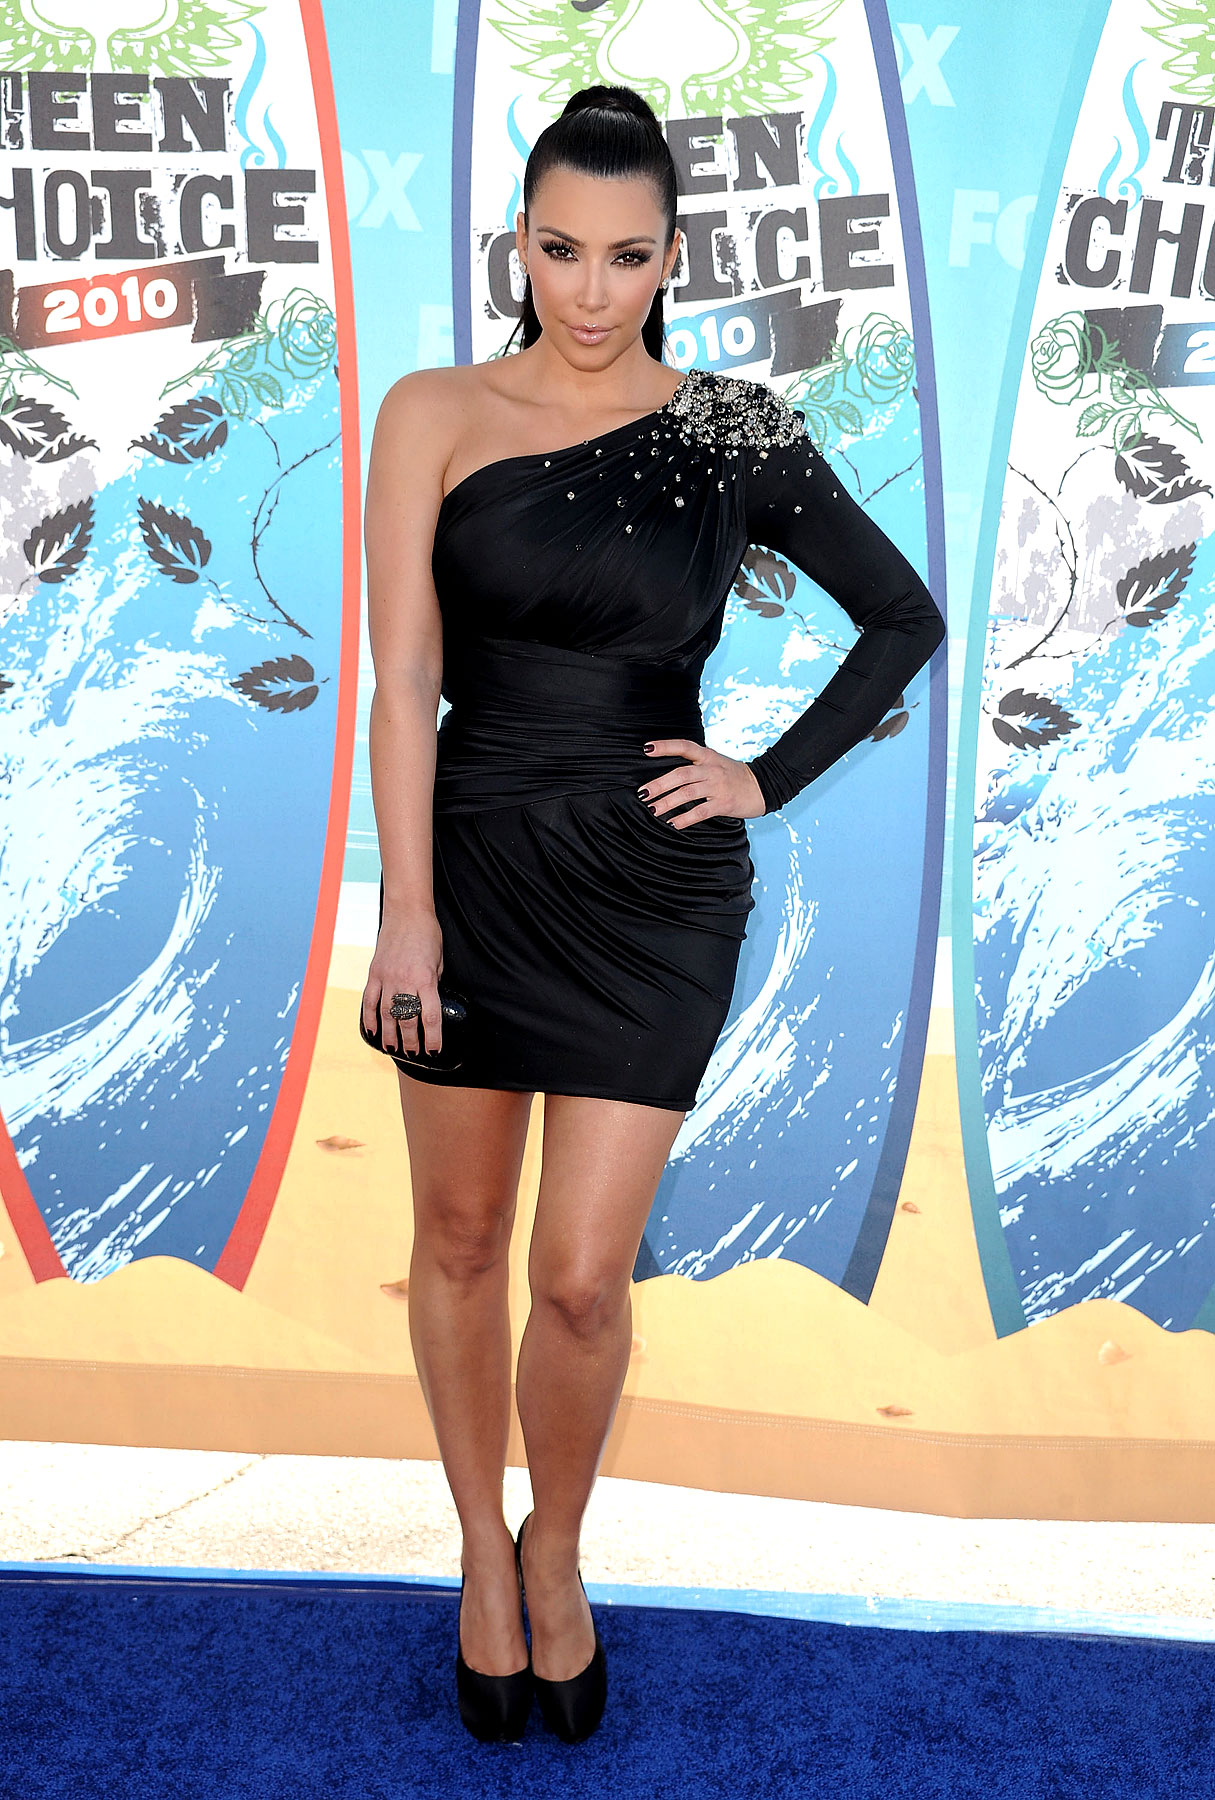 Remembering Kim Kardashian's One-Shoulder Dresses (PHOTOS)